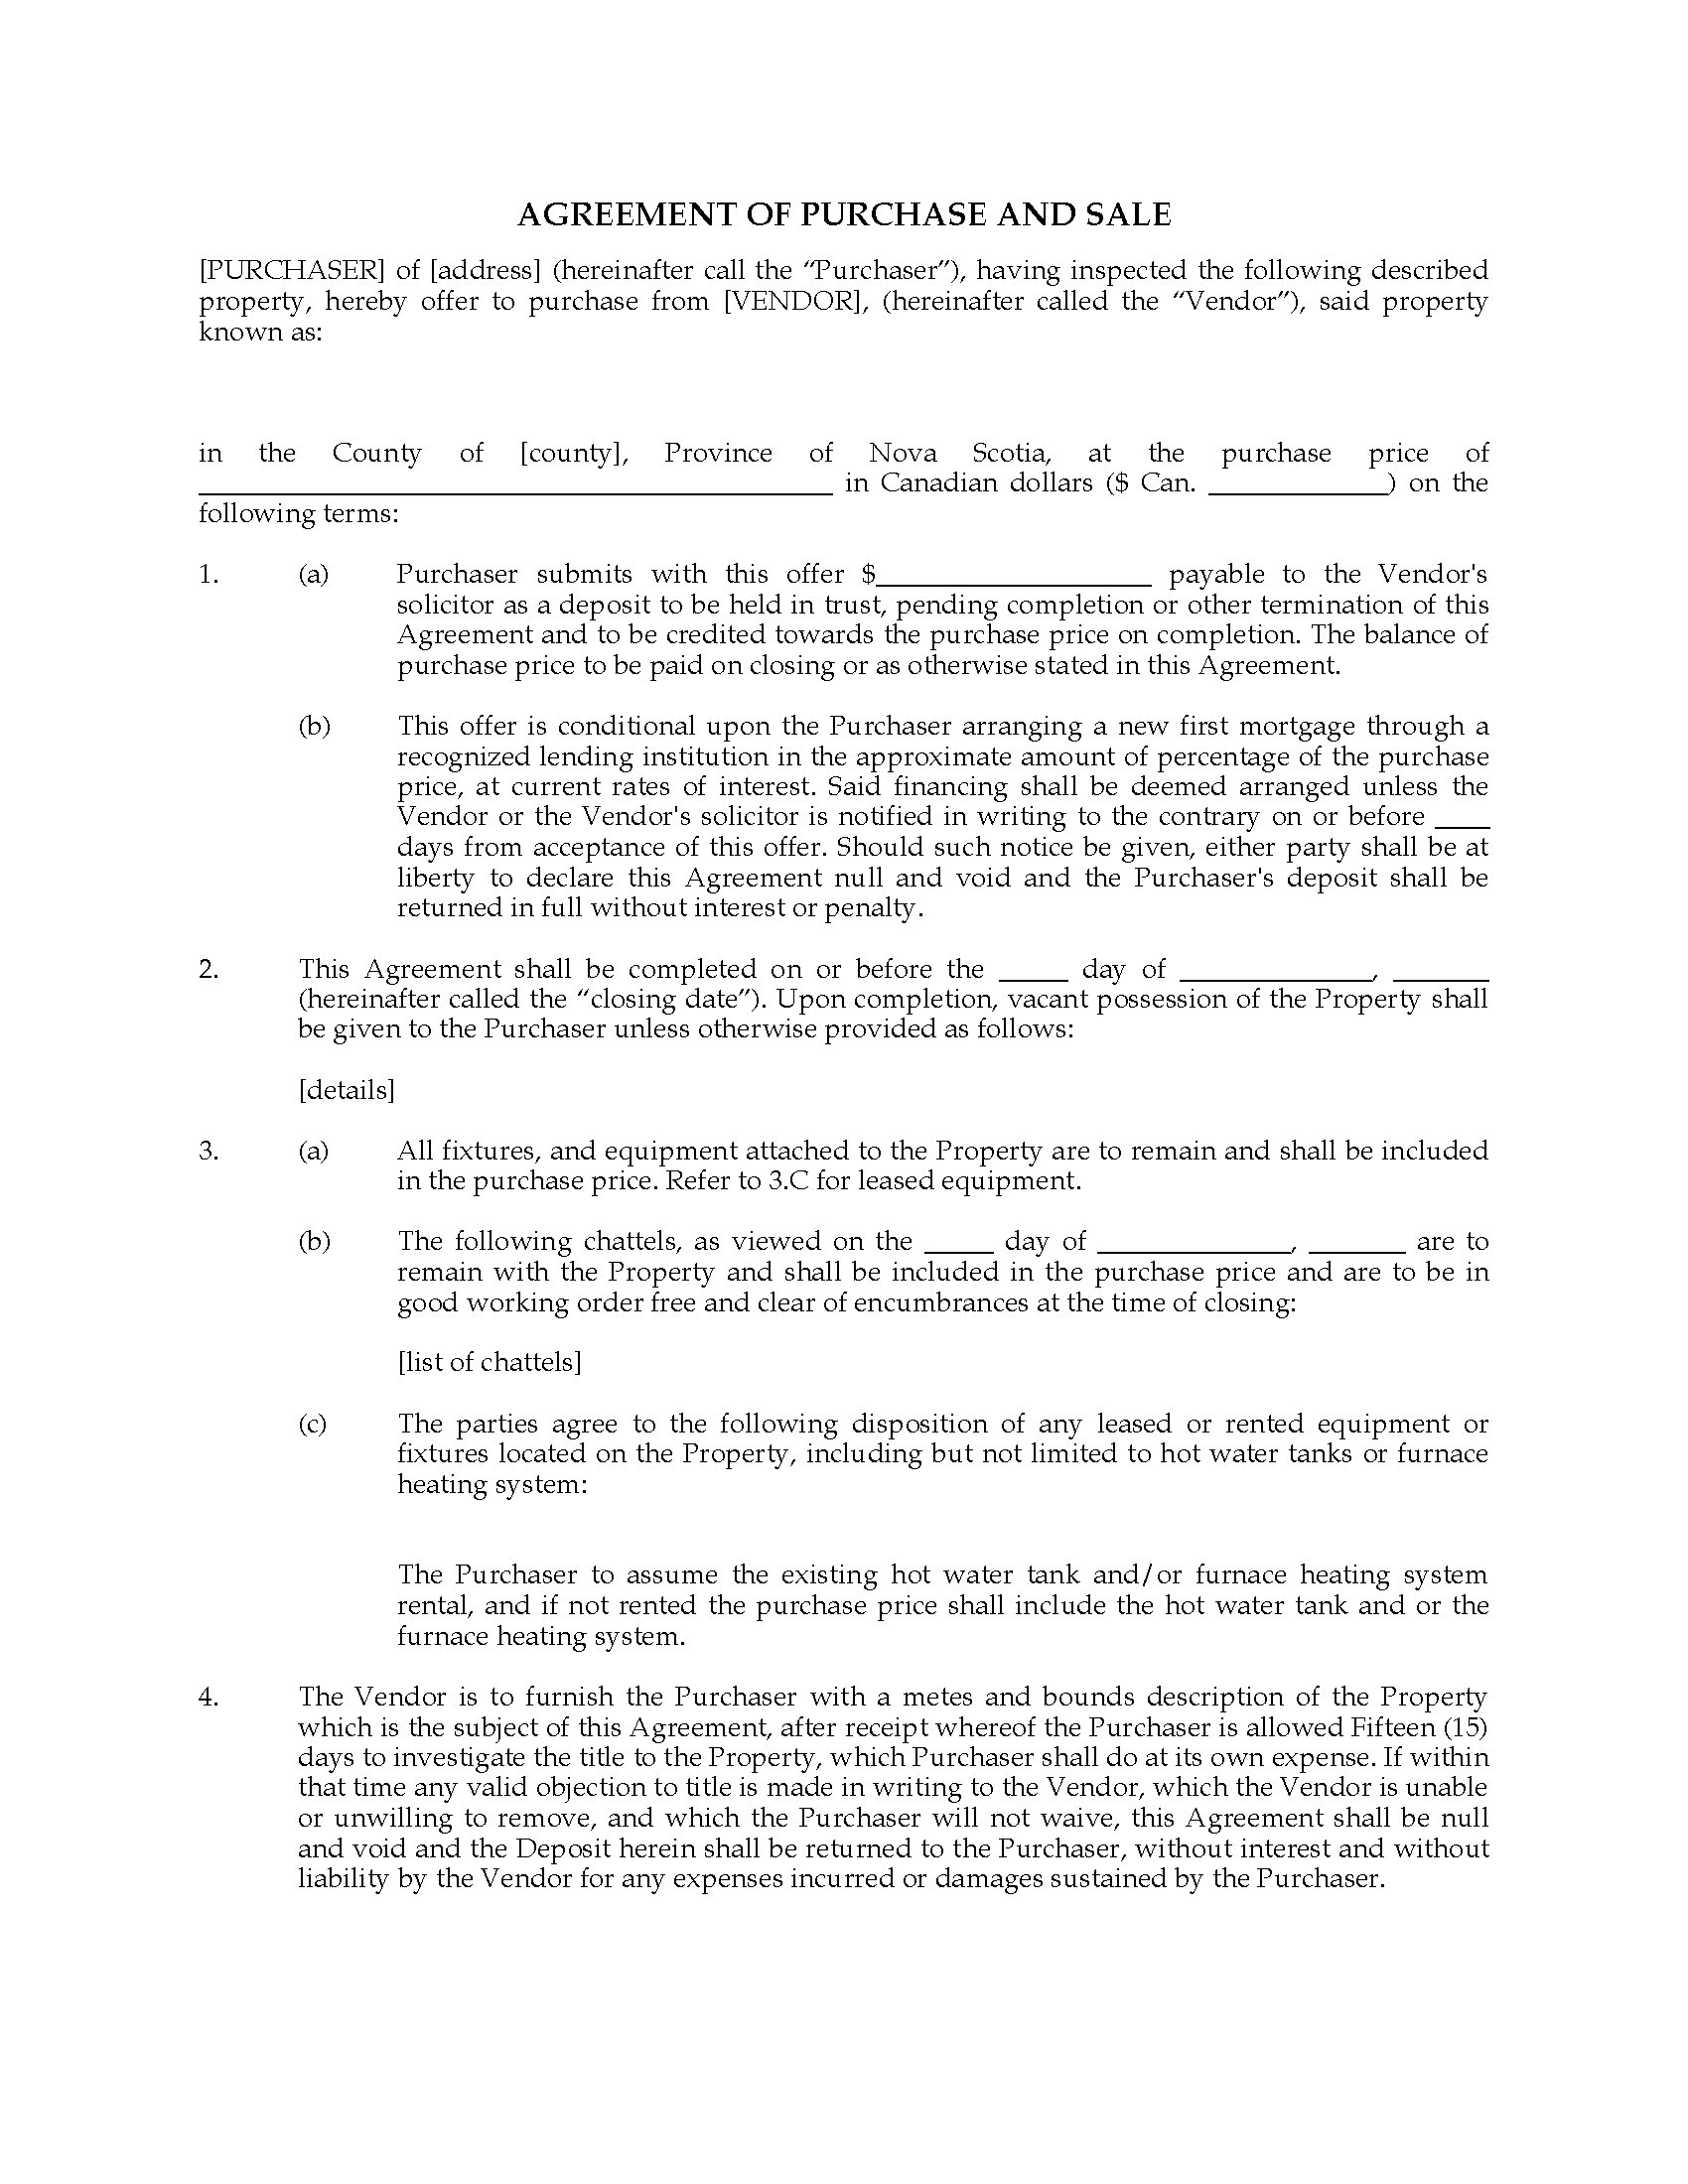 Nova Scotia Residential Purchase and Sale Agreement – Purchase and Sales Agreement